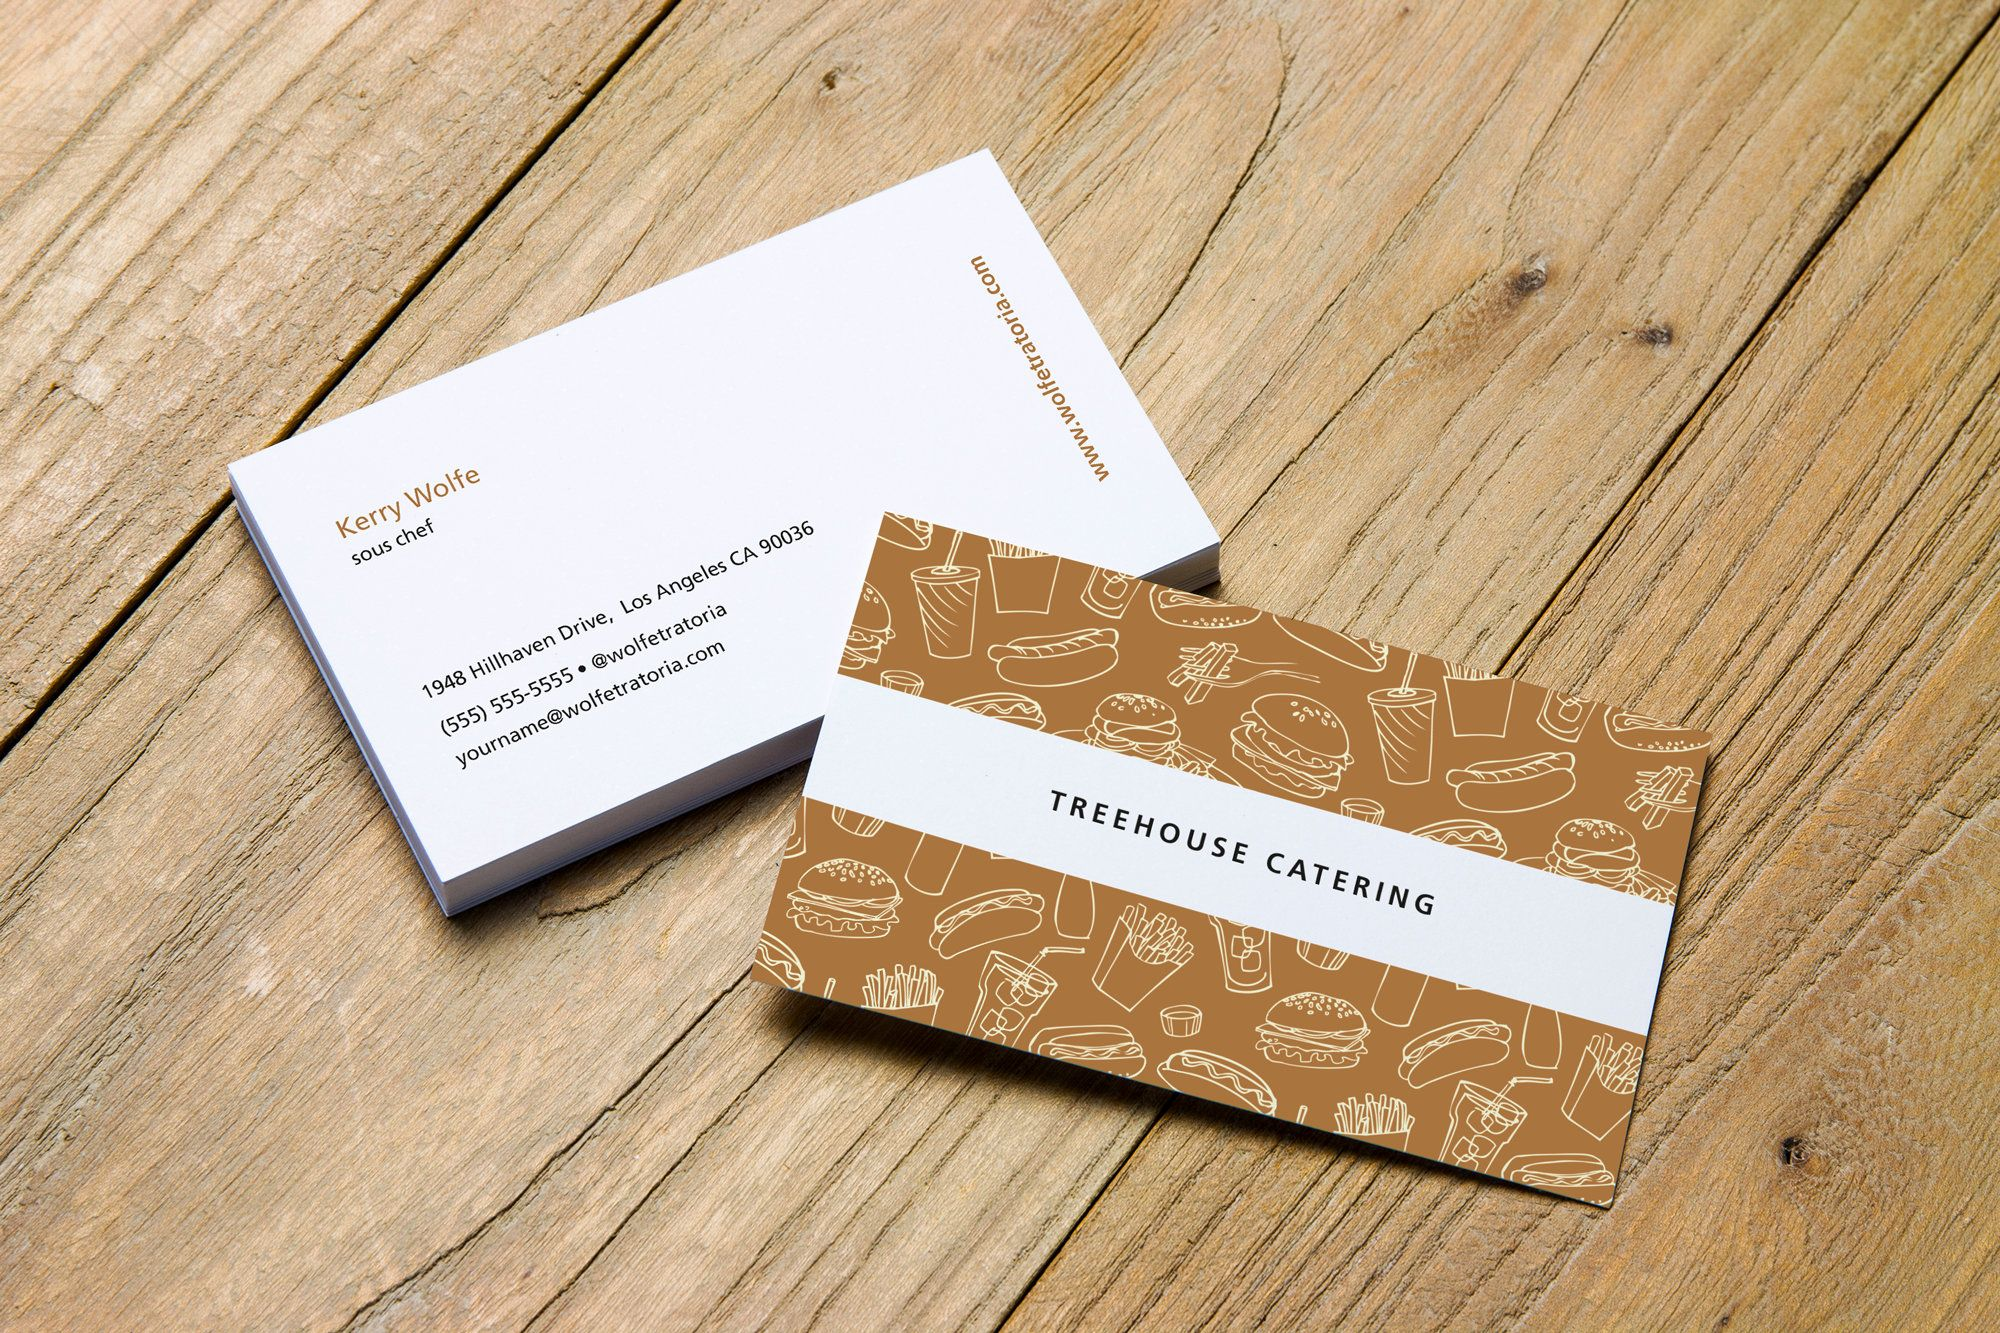 The Latest Business Card Templates Added To Our Etsy Shop Https Etsy Me 2gm8vfu Digital Busin Bakery Business Cards Catering Business Cards Business Cards